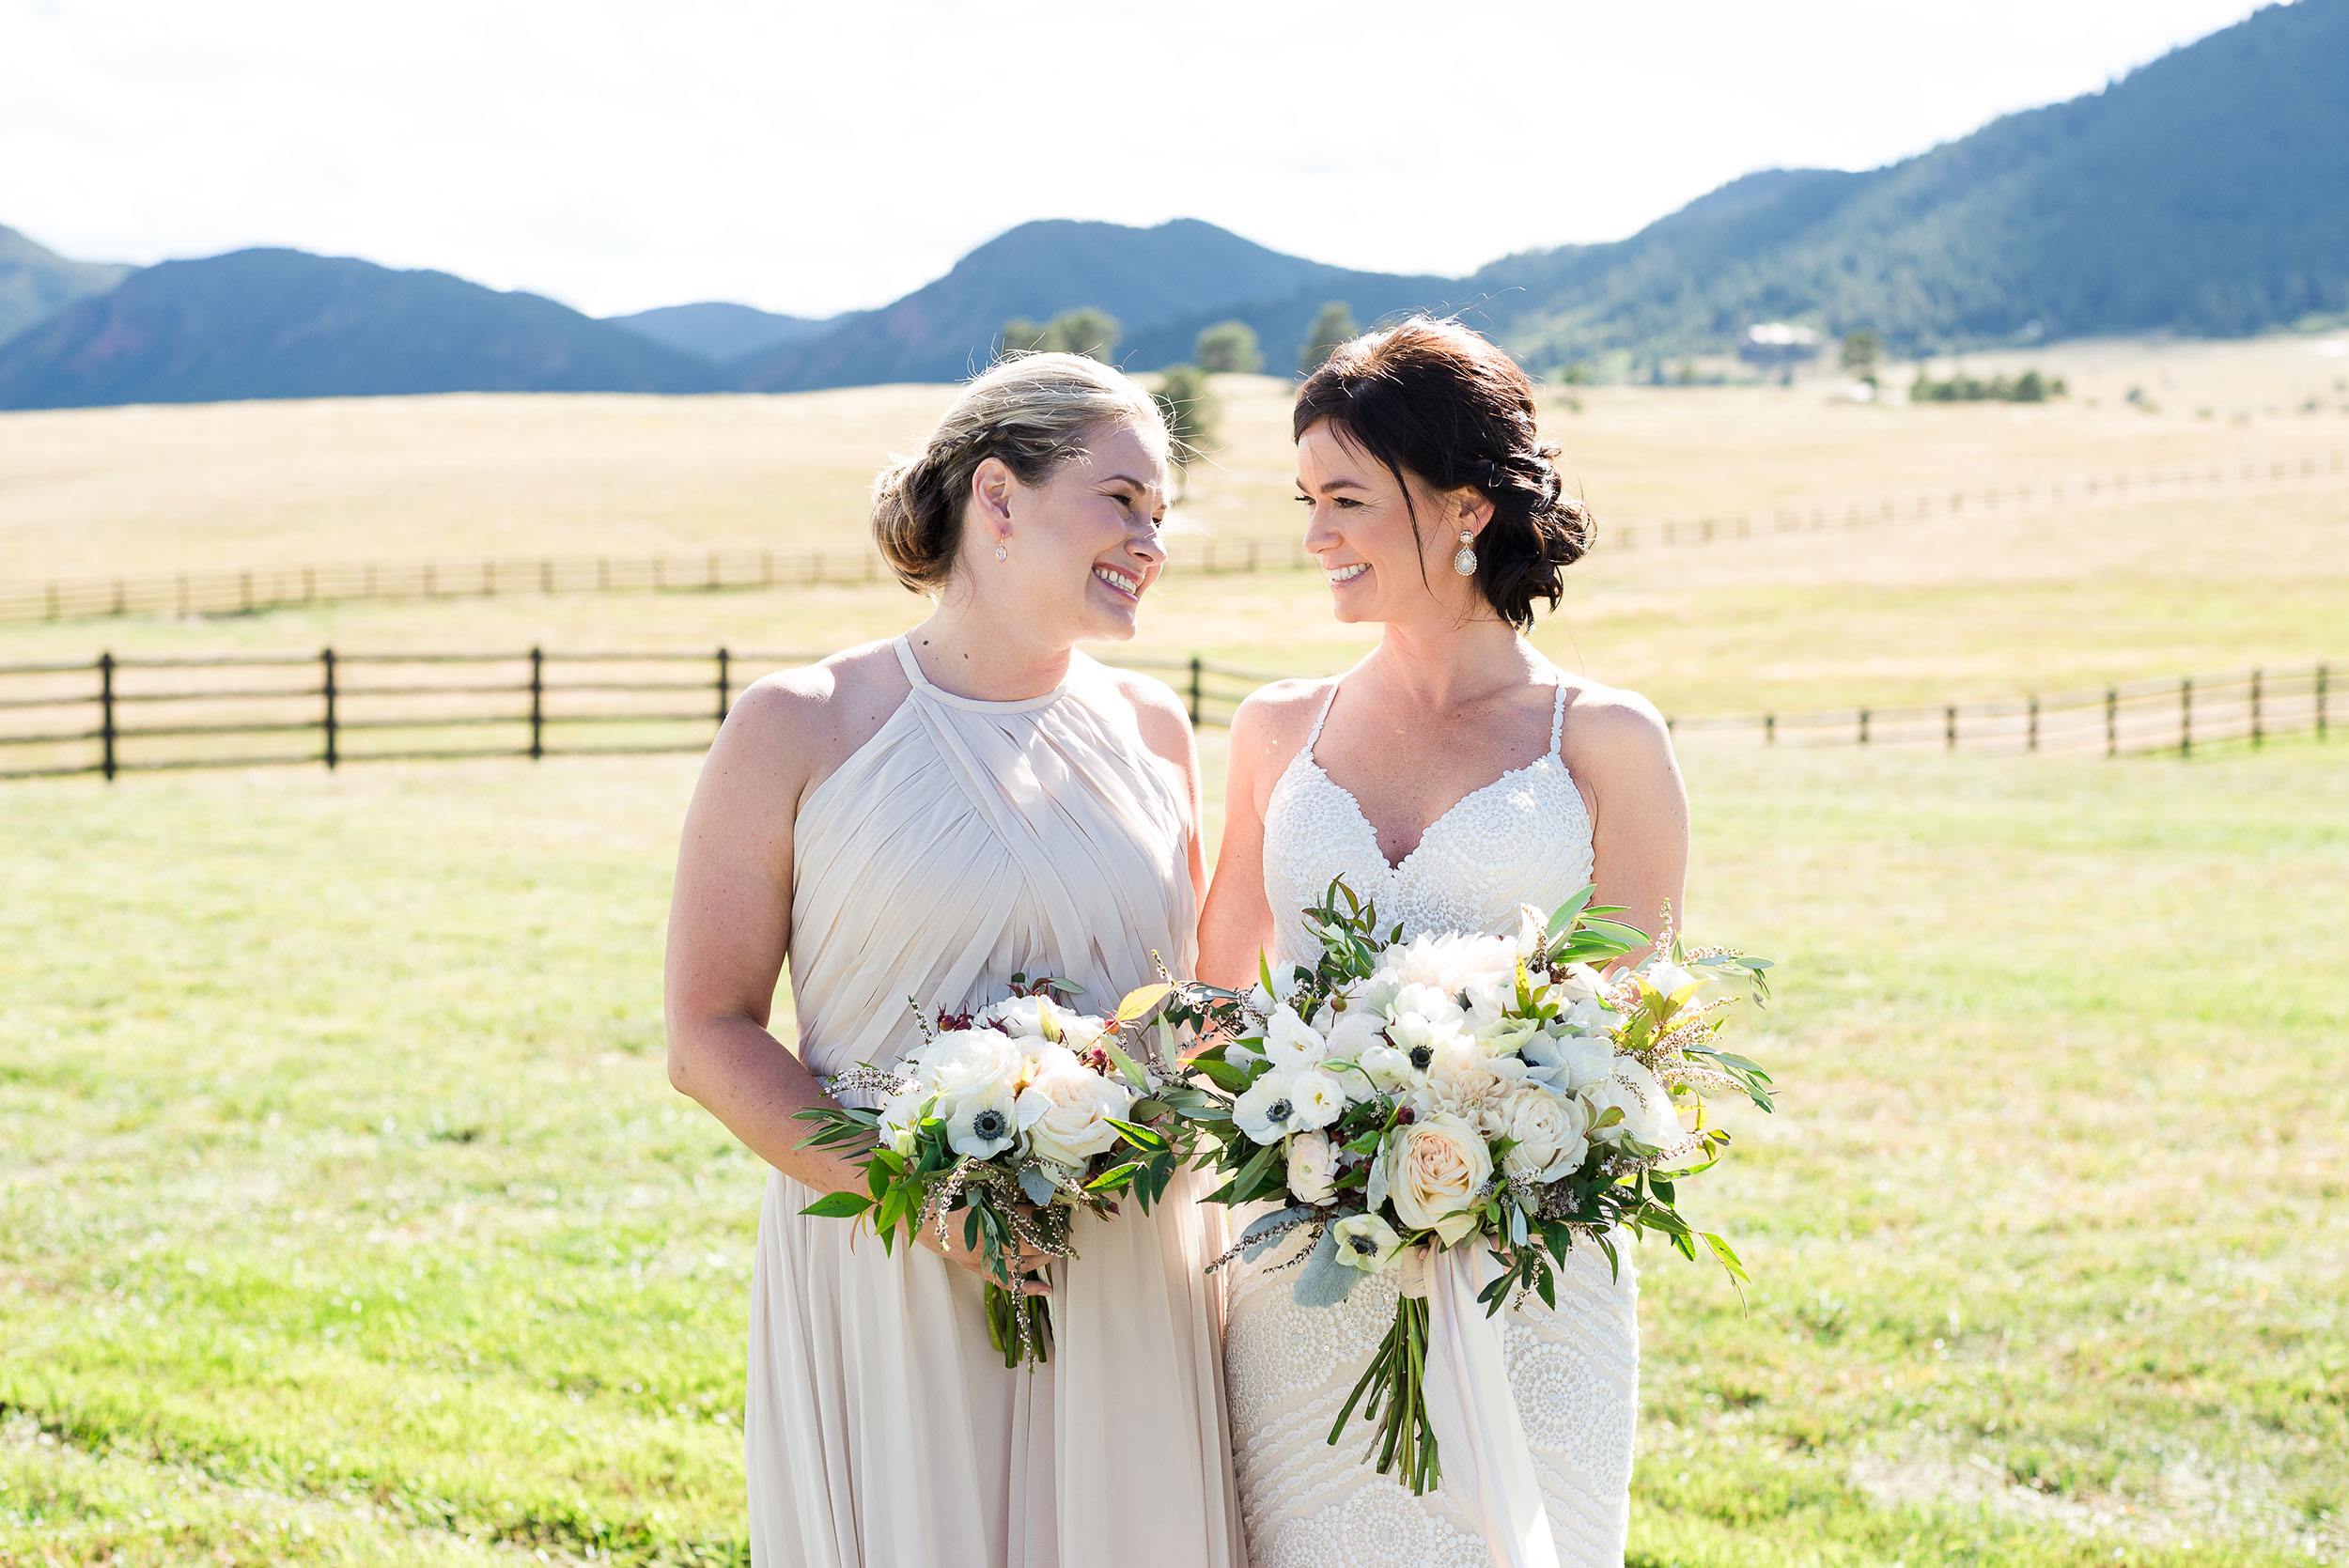 Bouquet Bridesmaids | Colorado Destination Wedding | Luxe Mountain Weddings